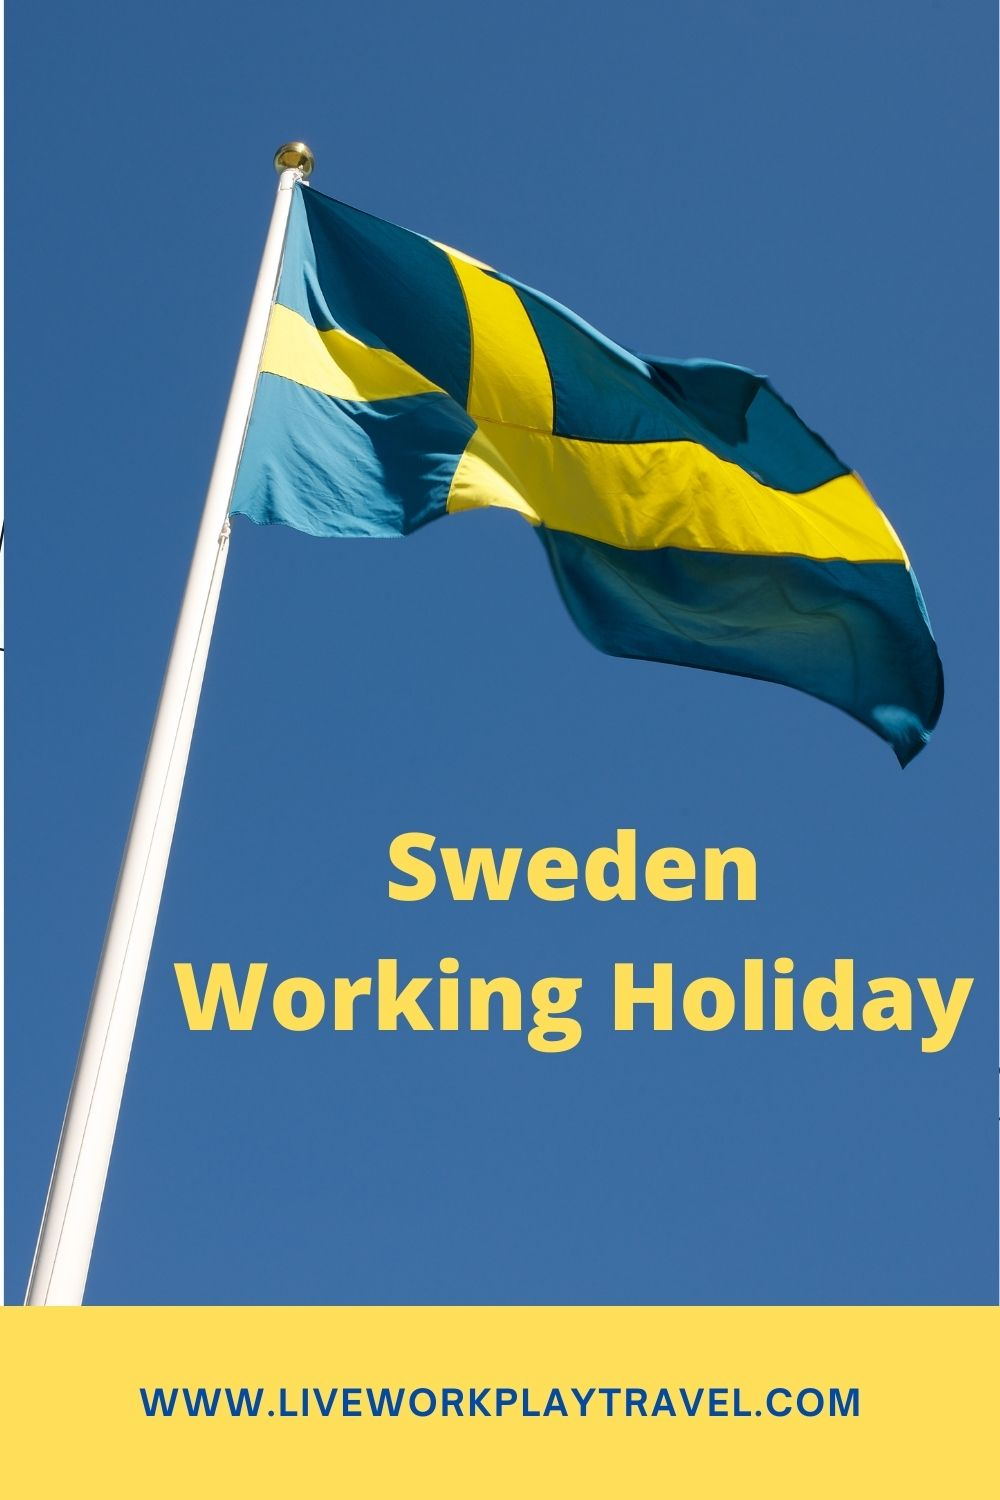 A Working Holiday in Sweden Will Let You Stay In Sweden For Up To A Year. Sweden's Flag Is Blue And Yellow.